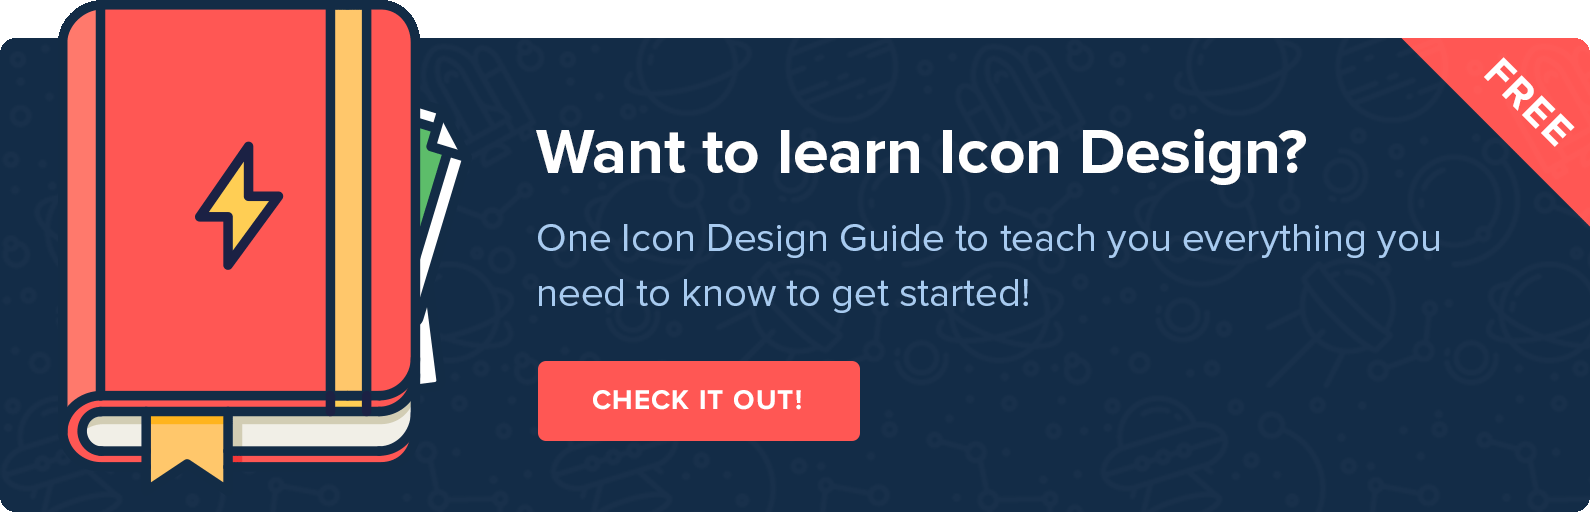 icon-design-guide